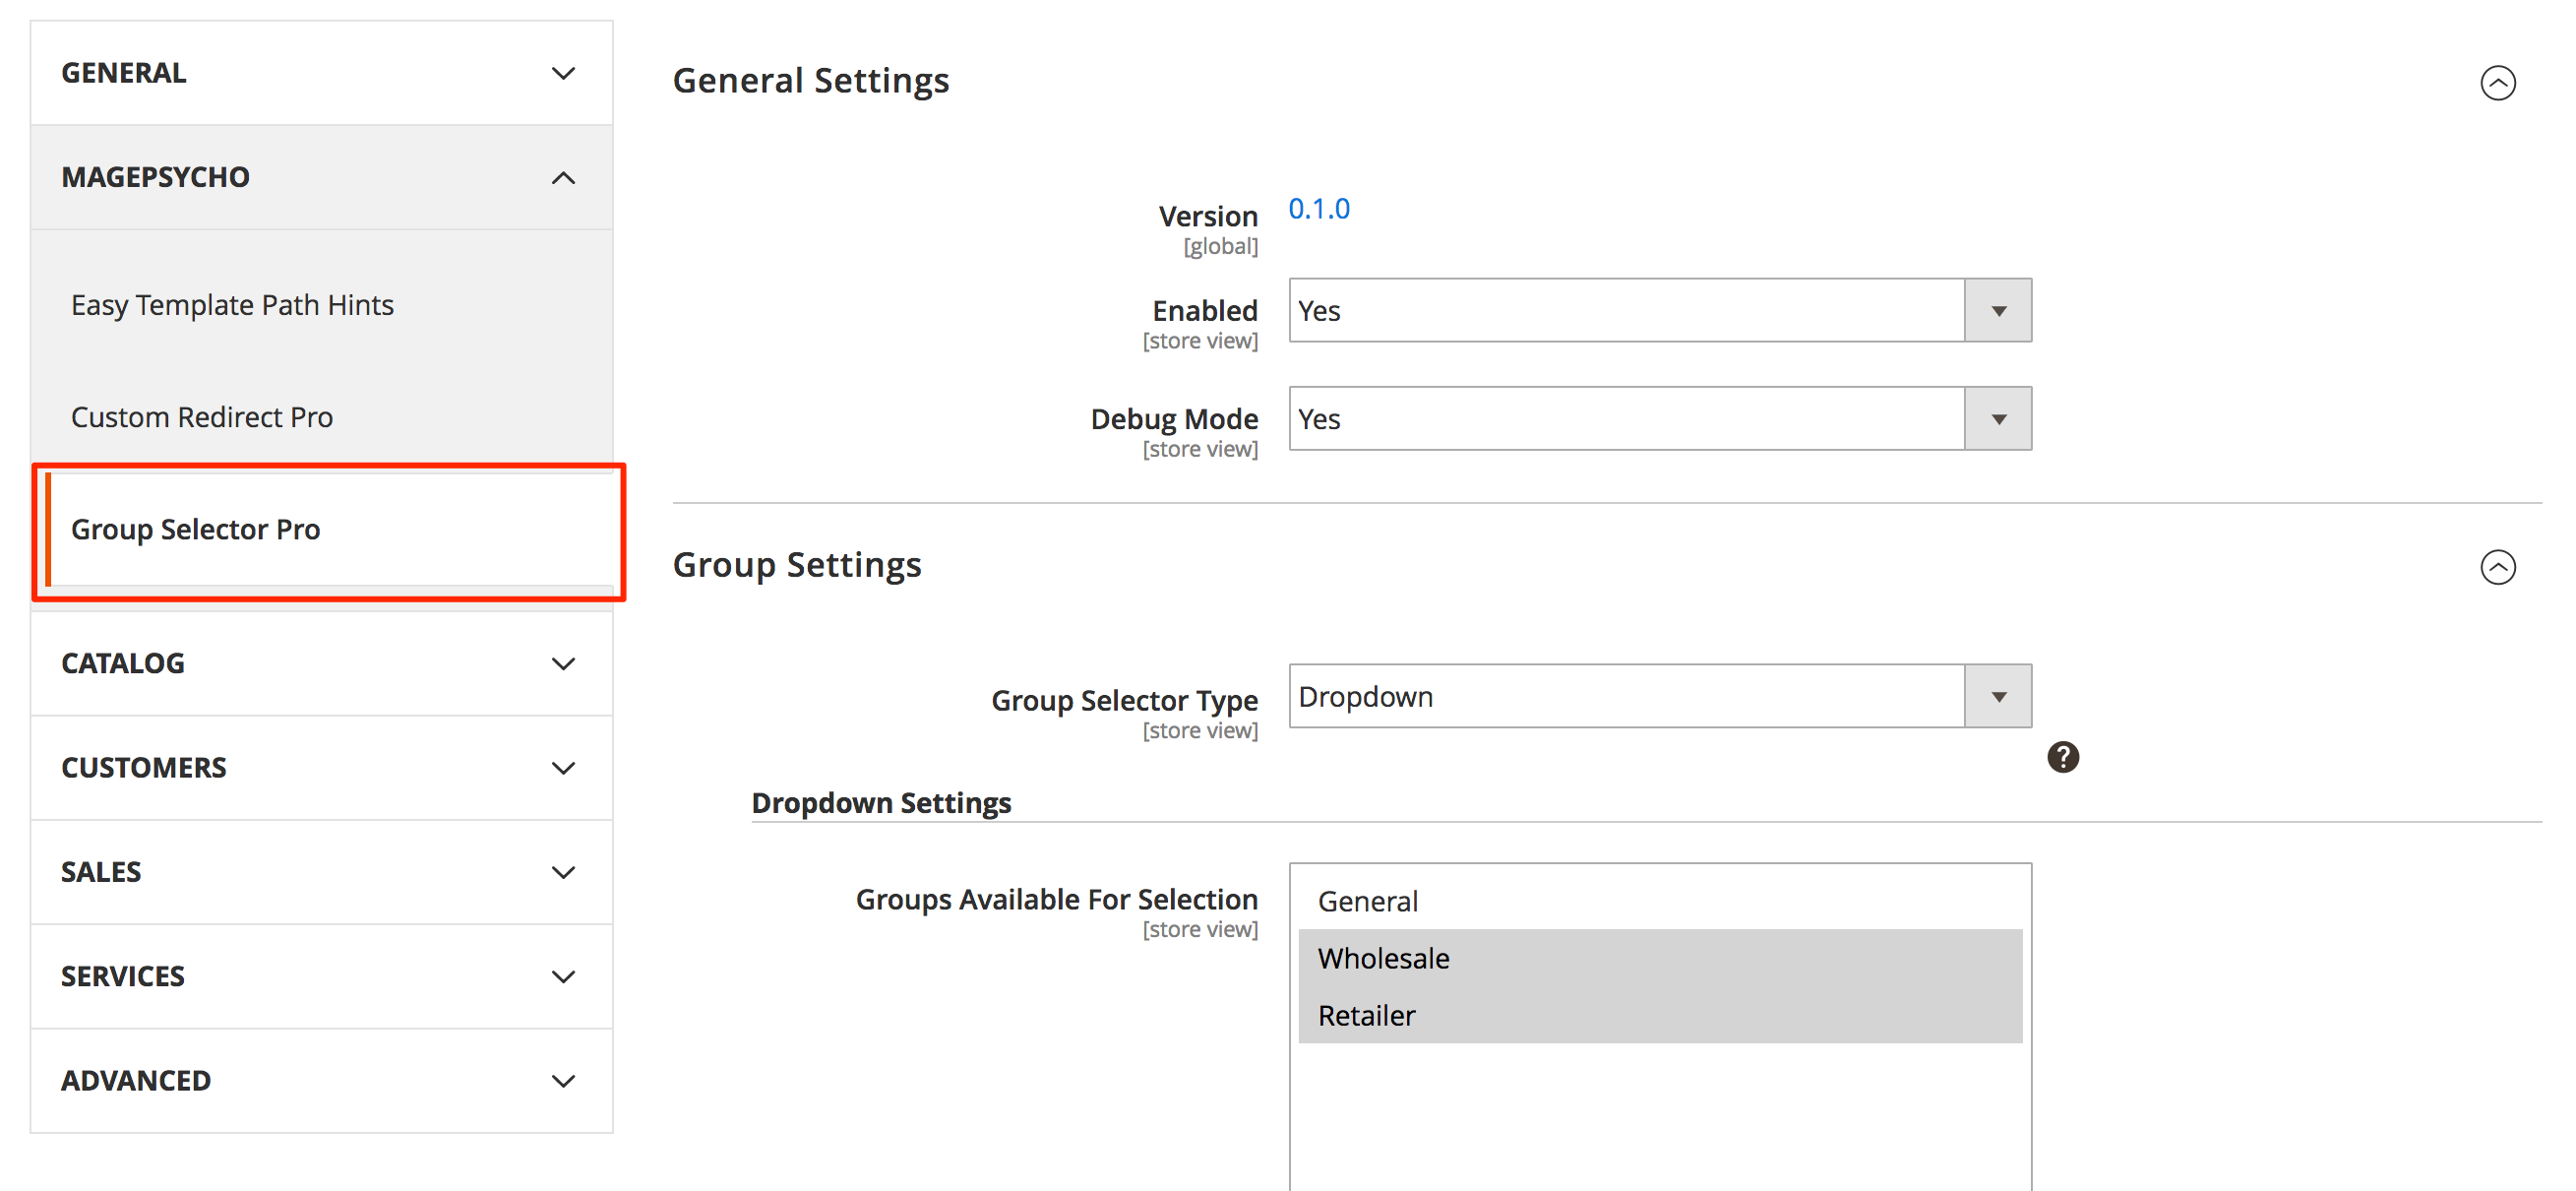 Settings: Group Selector Type - Drop-down